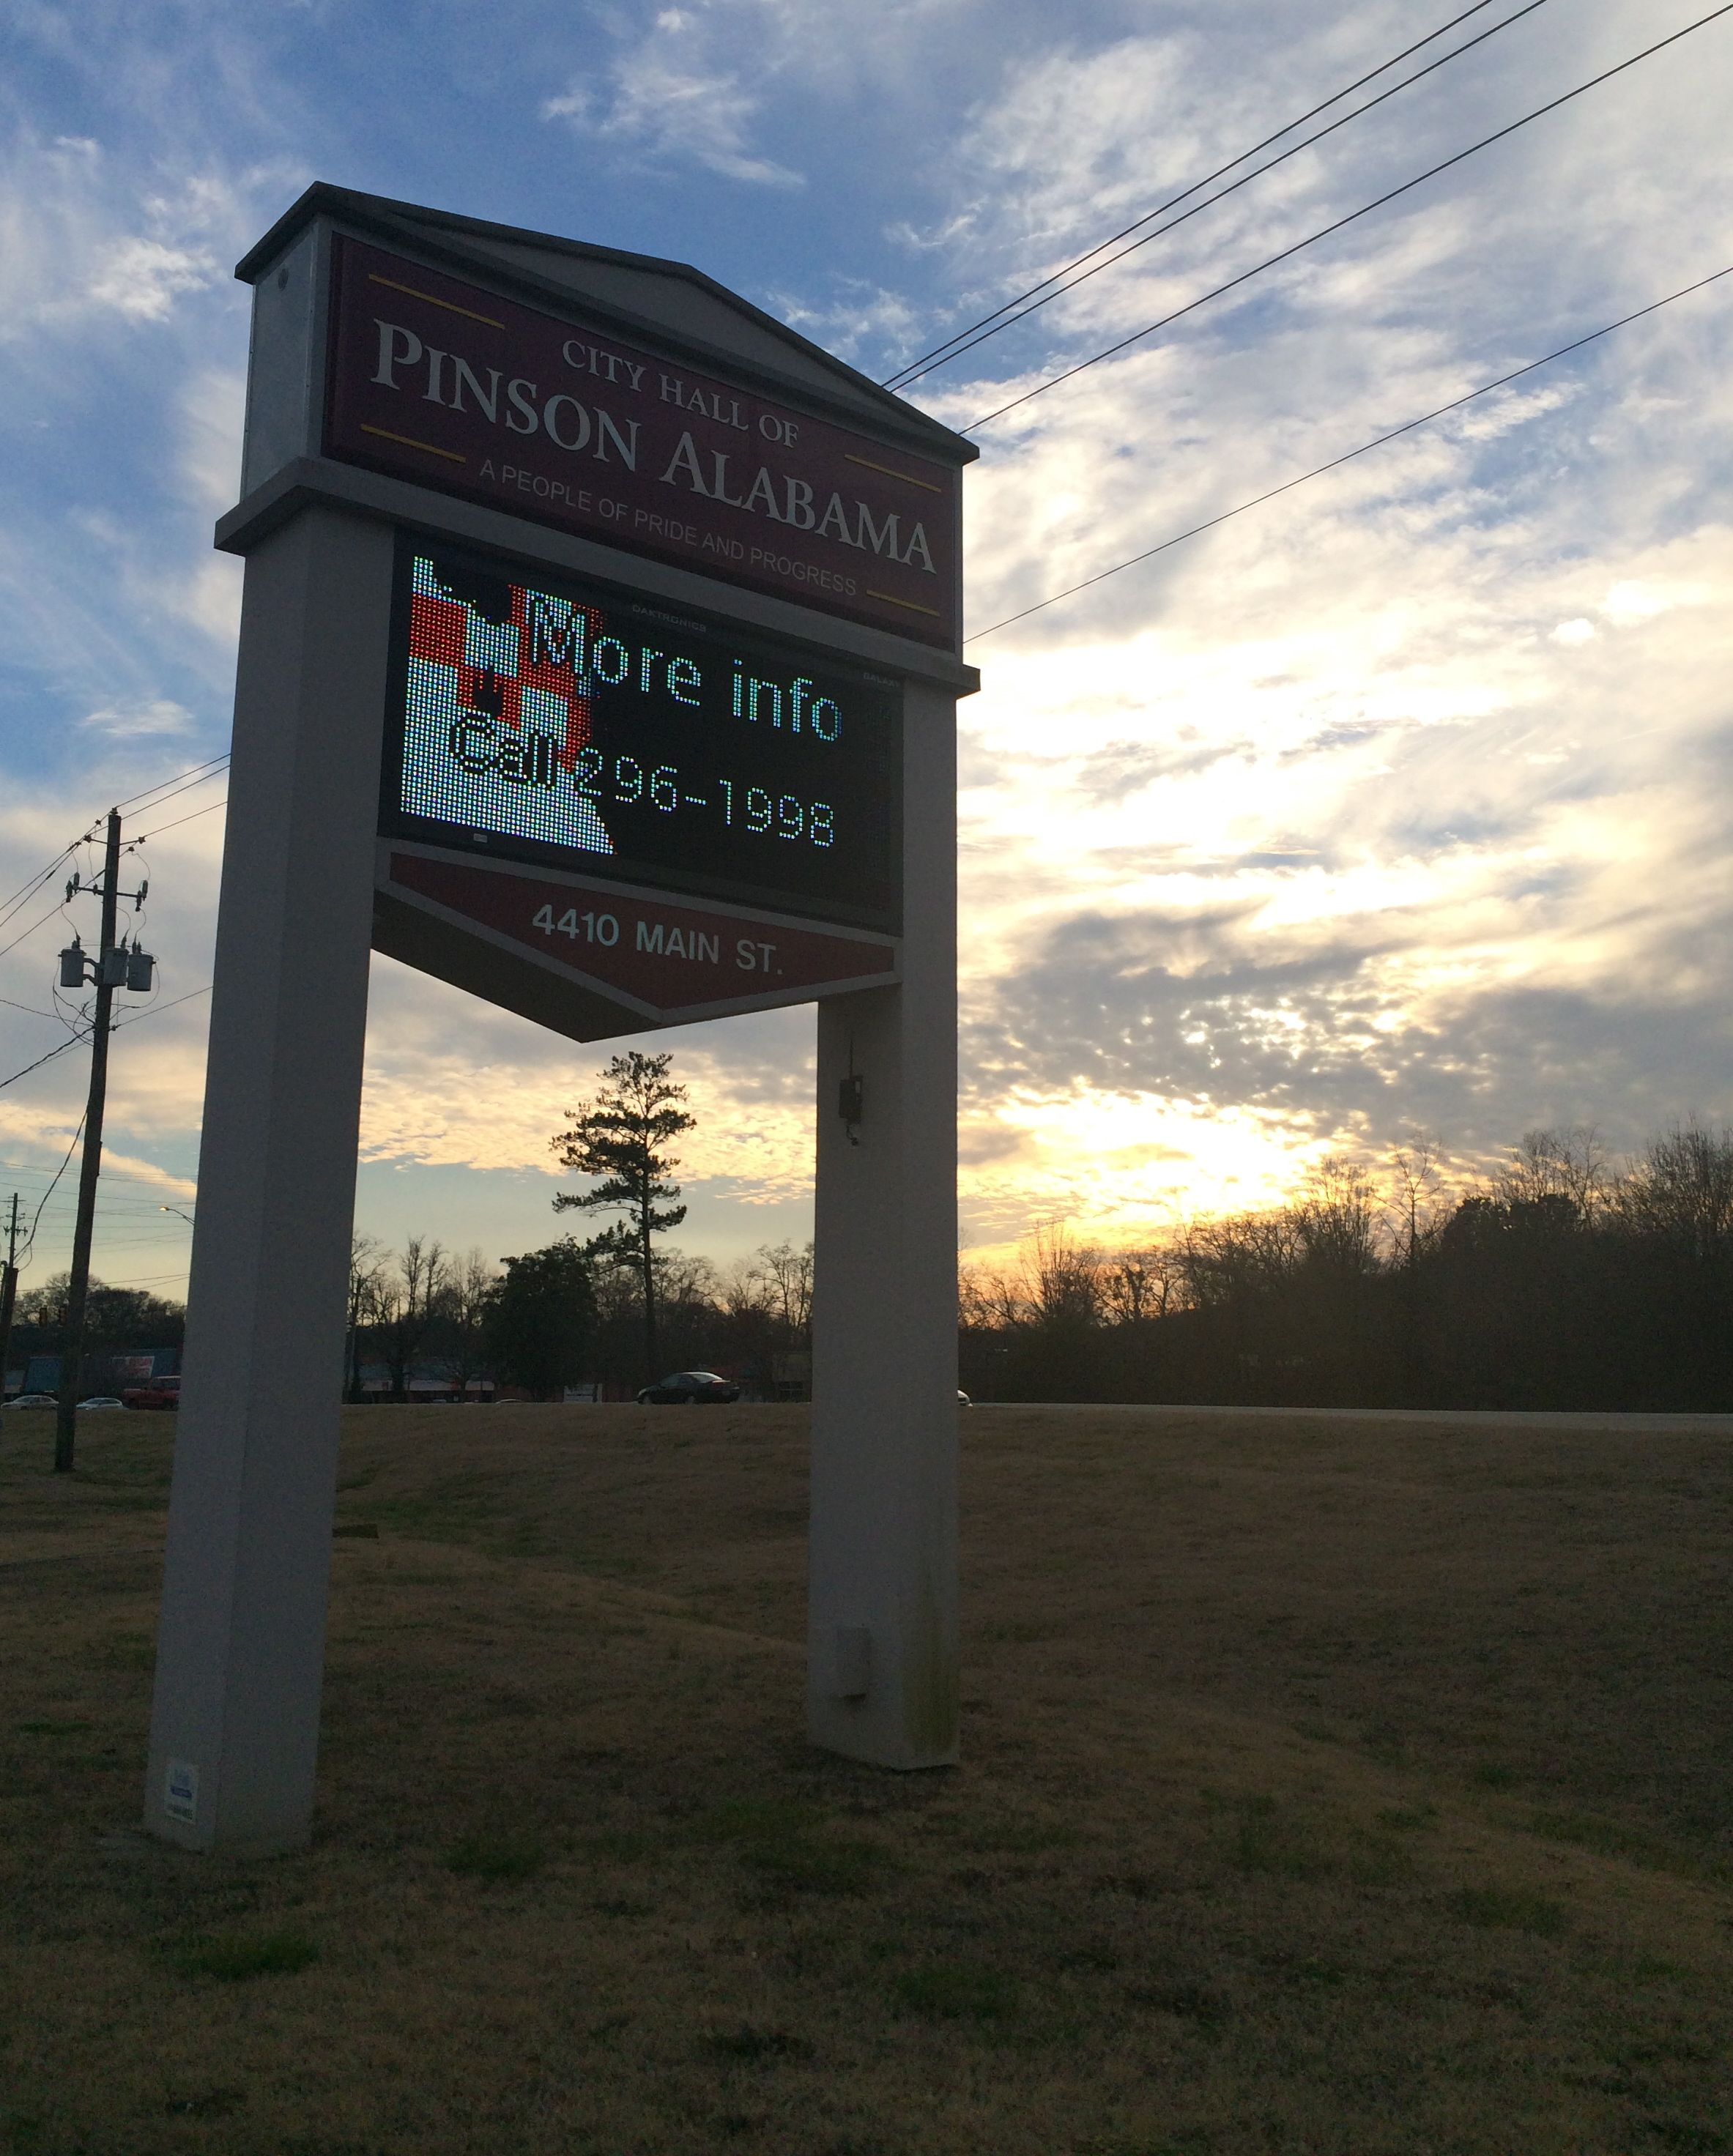 Pinson Council announces locations added to national registry